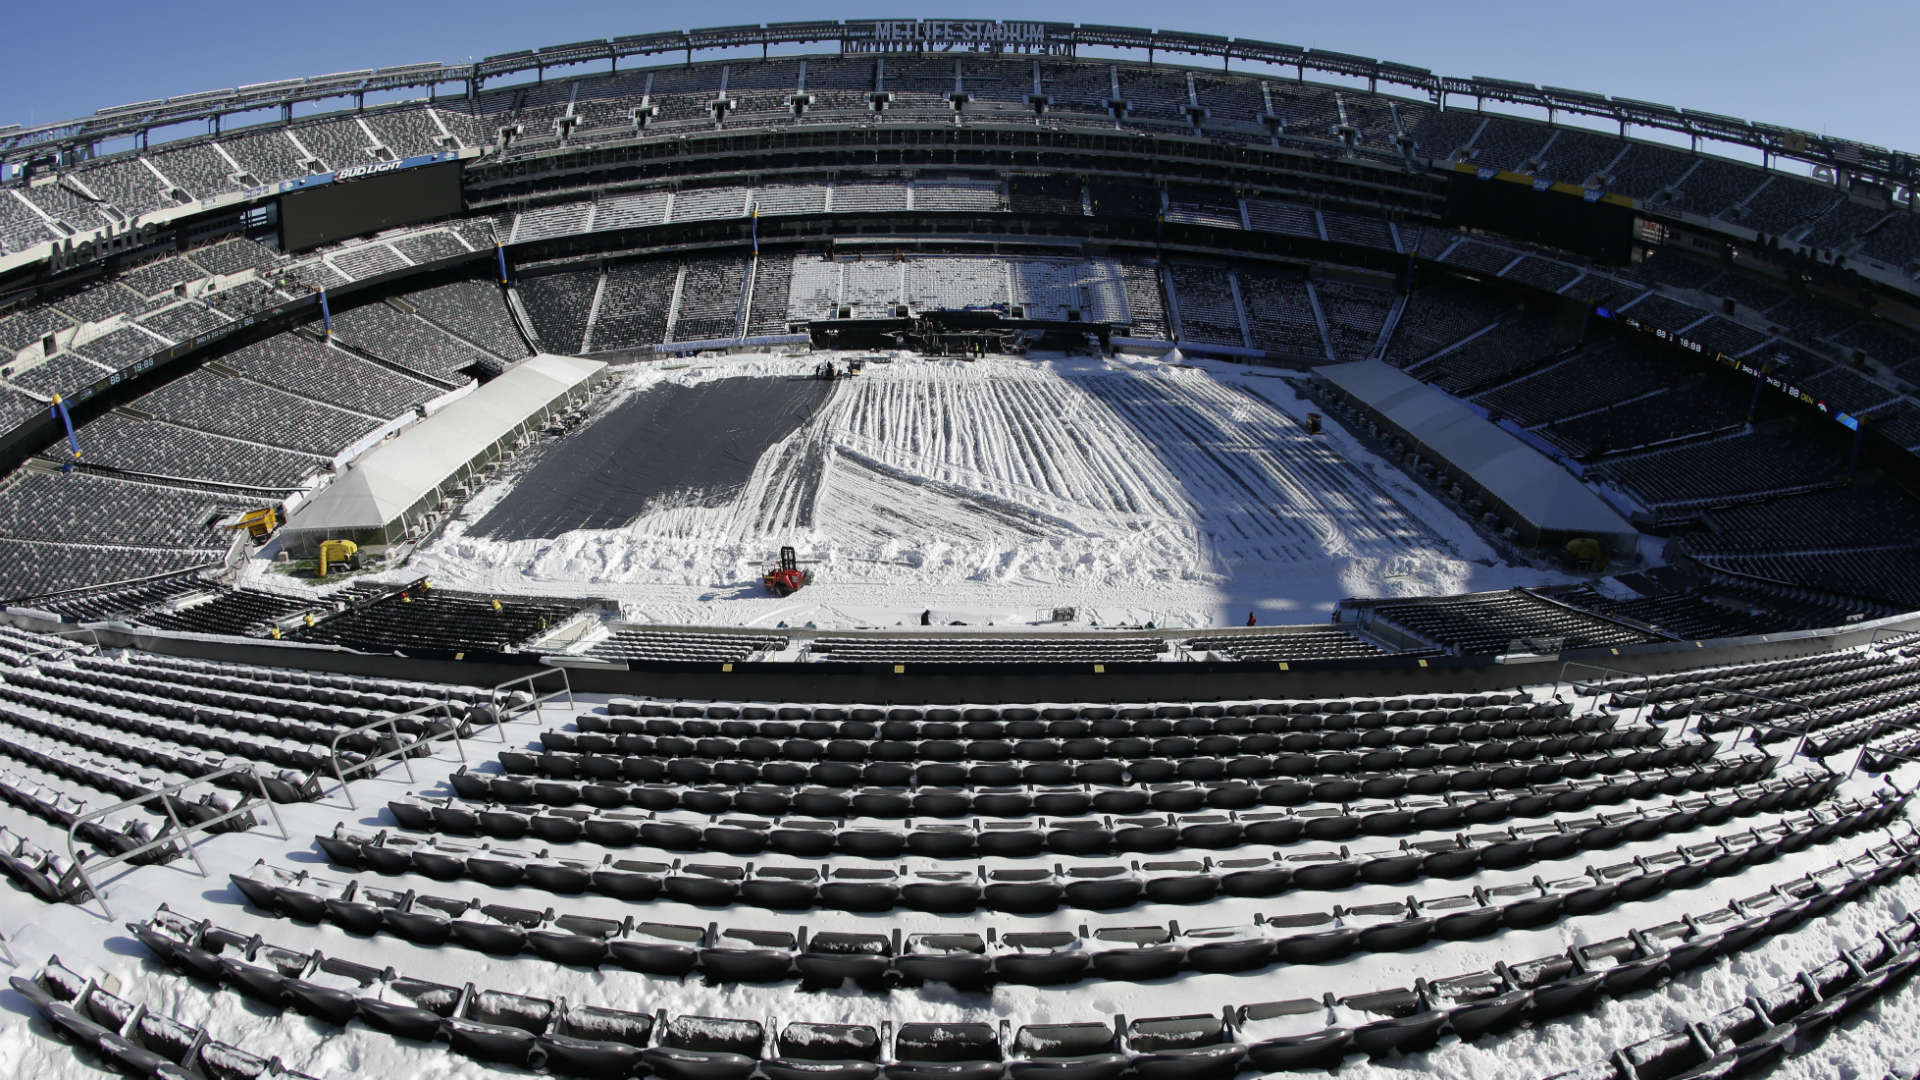 Super Bowl schedule and weather report